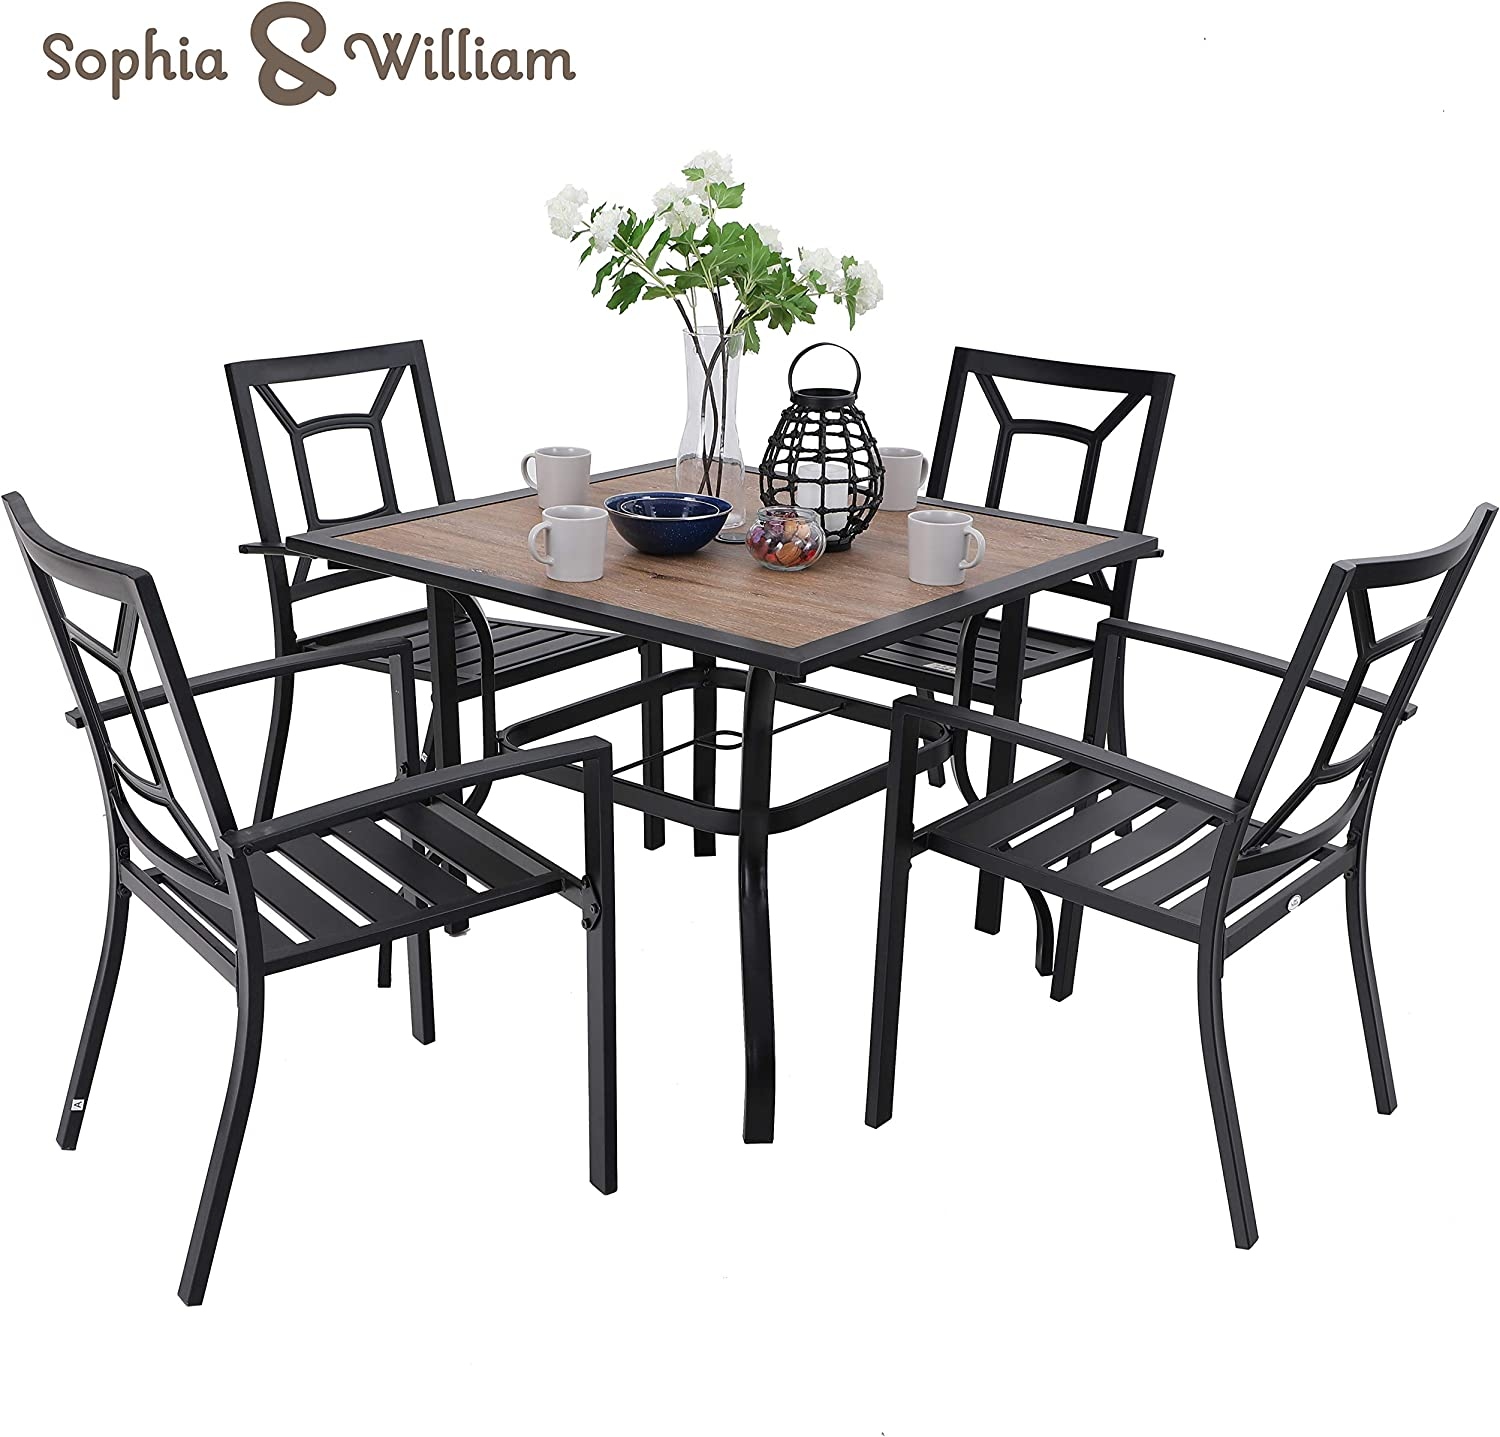 """Sophia /& William 5 Piece Outdoor Patio Dining Set Metal Table and Chairs Set with 37/"""" Wood-Like Table Top and Umbrella Hole"""